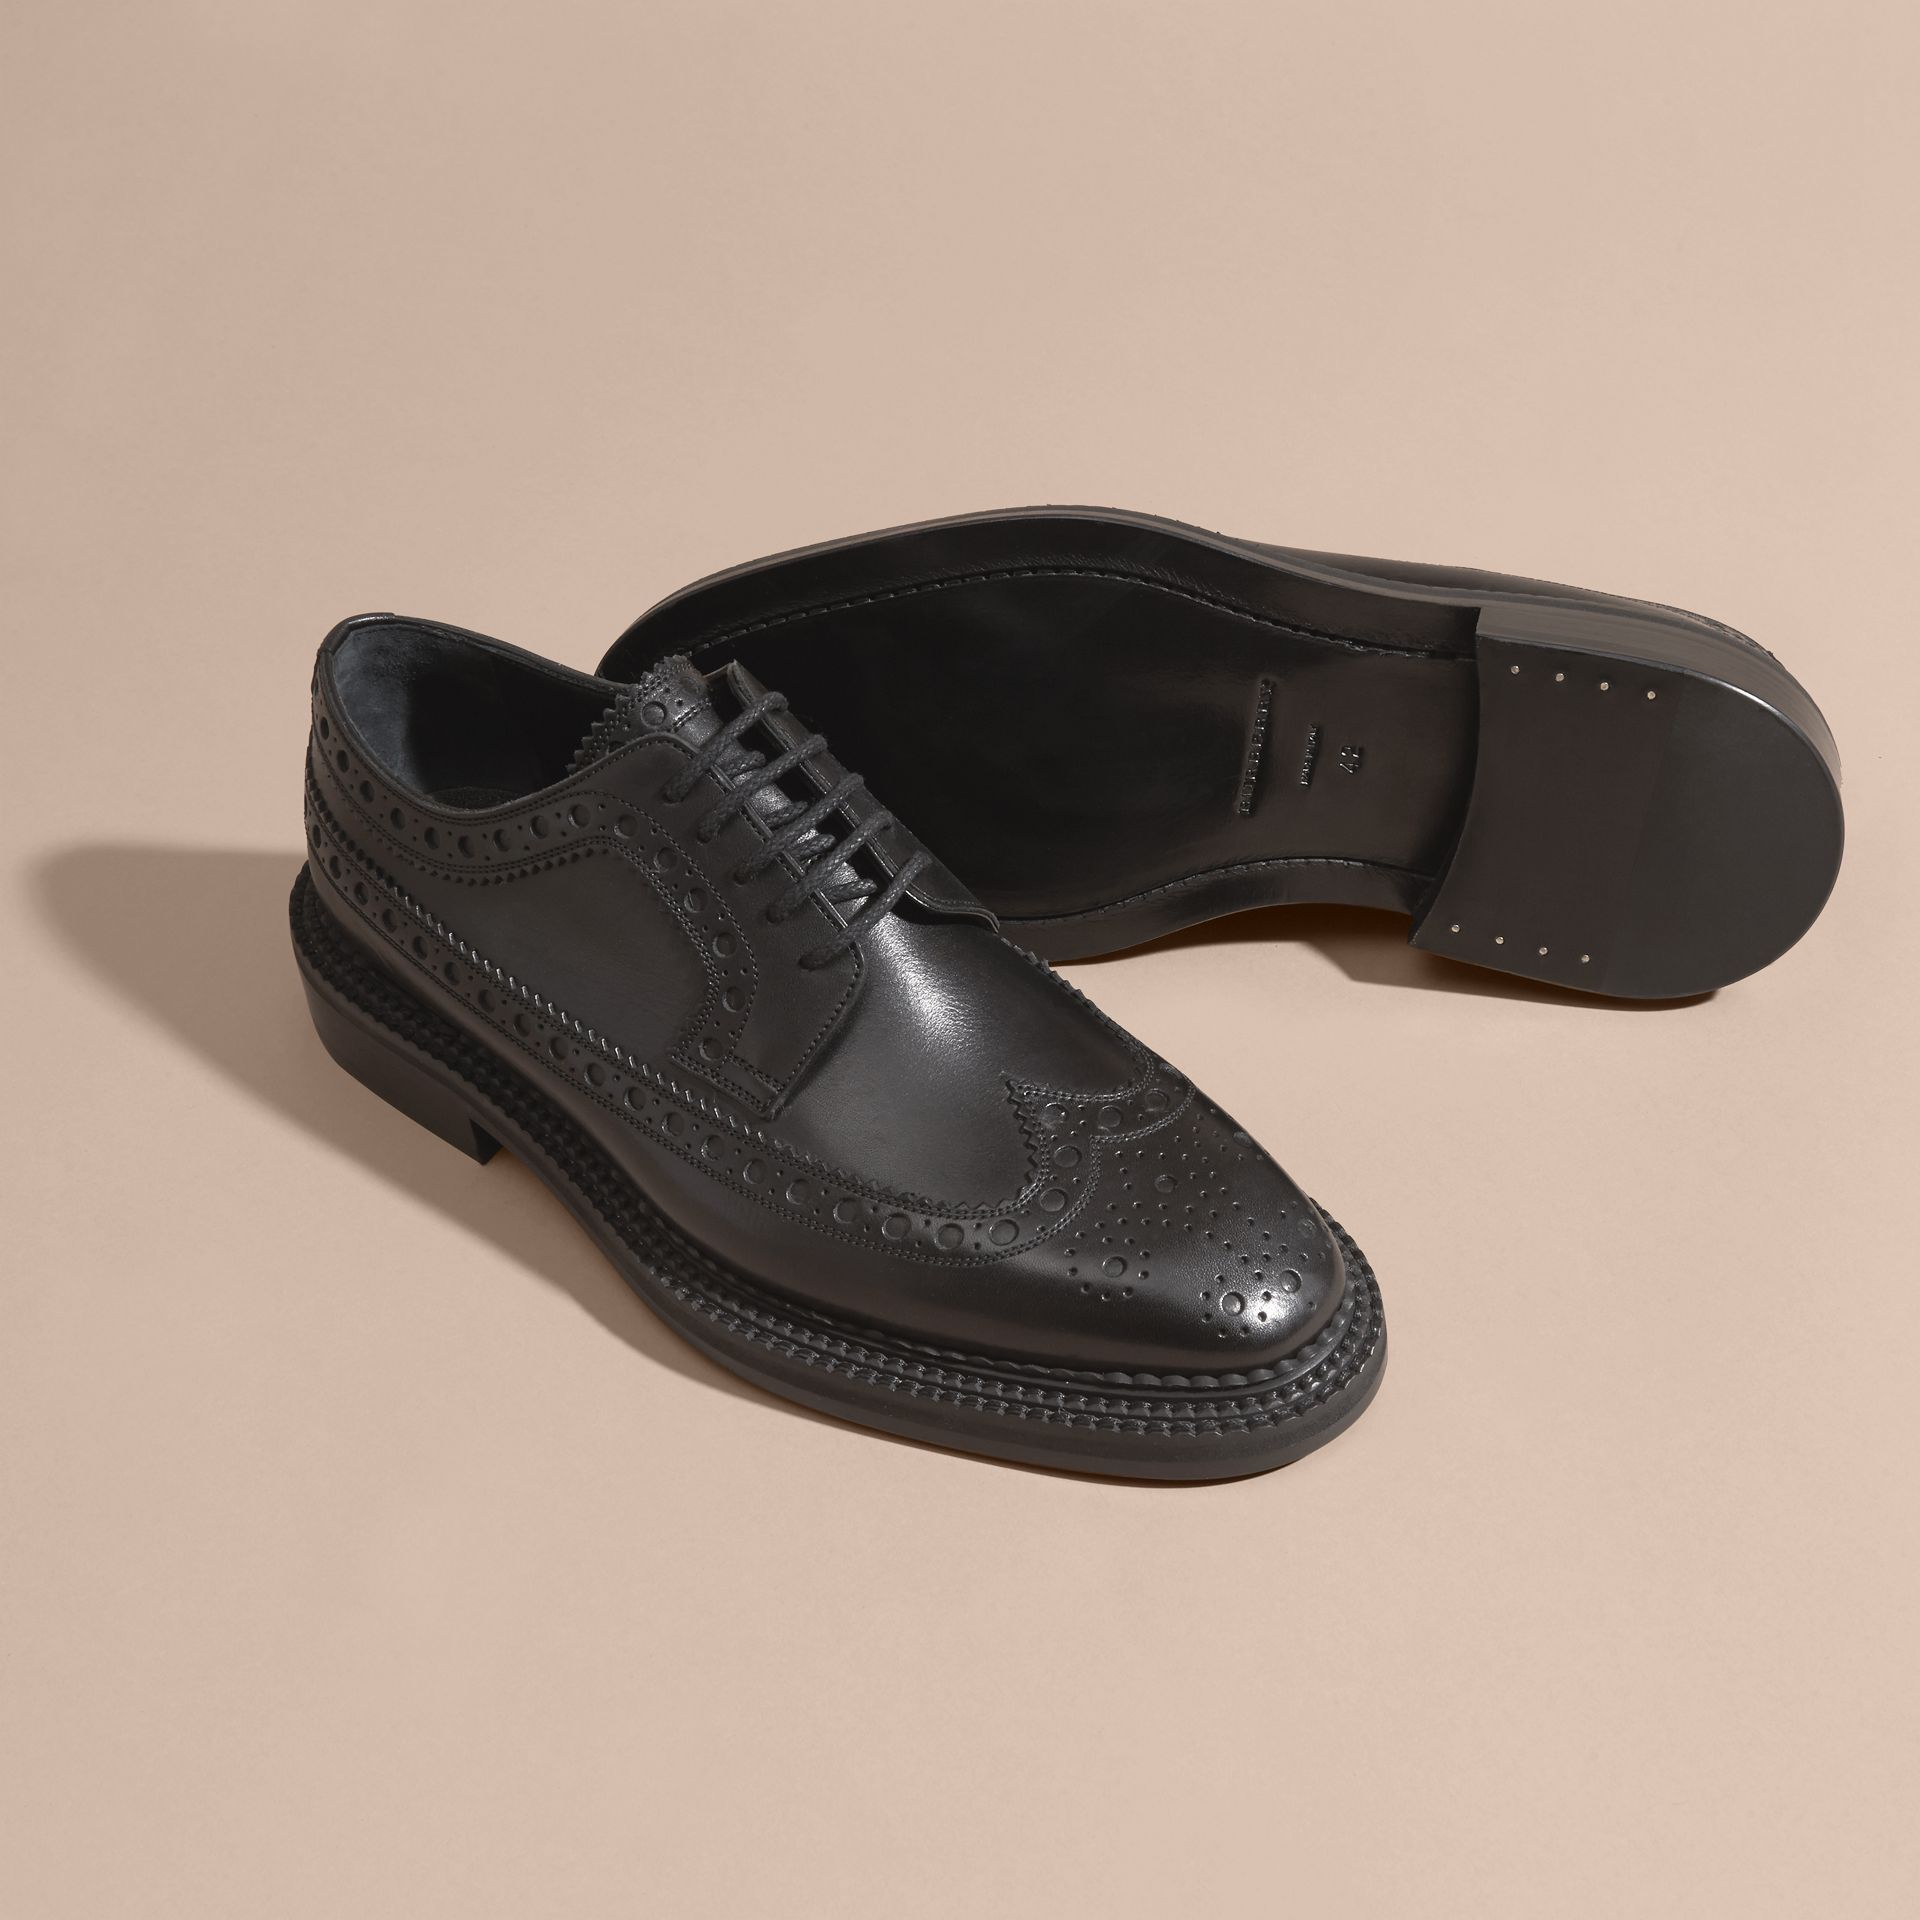 Leather Wingtip Brogues in Black - Men | Burberry Australia - gallery image 5